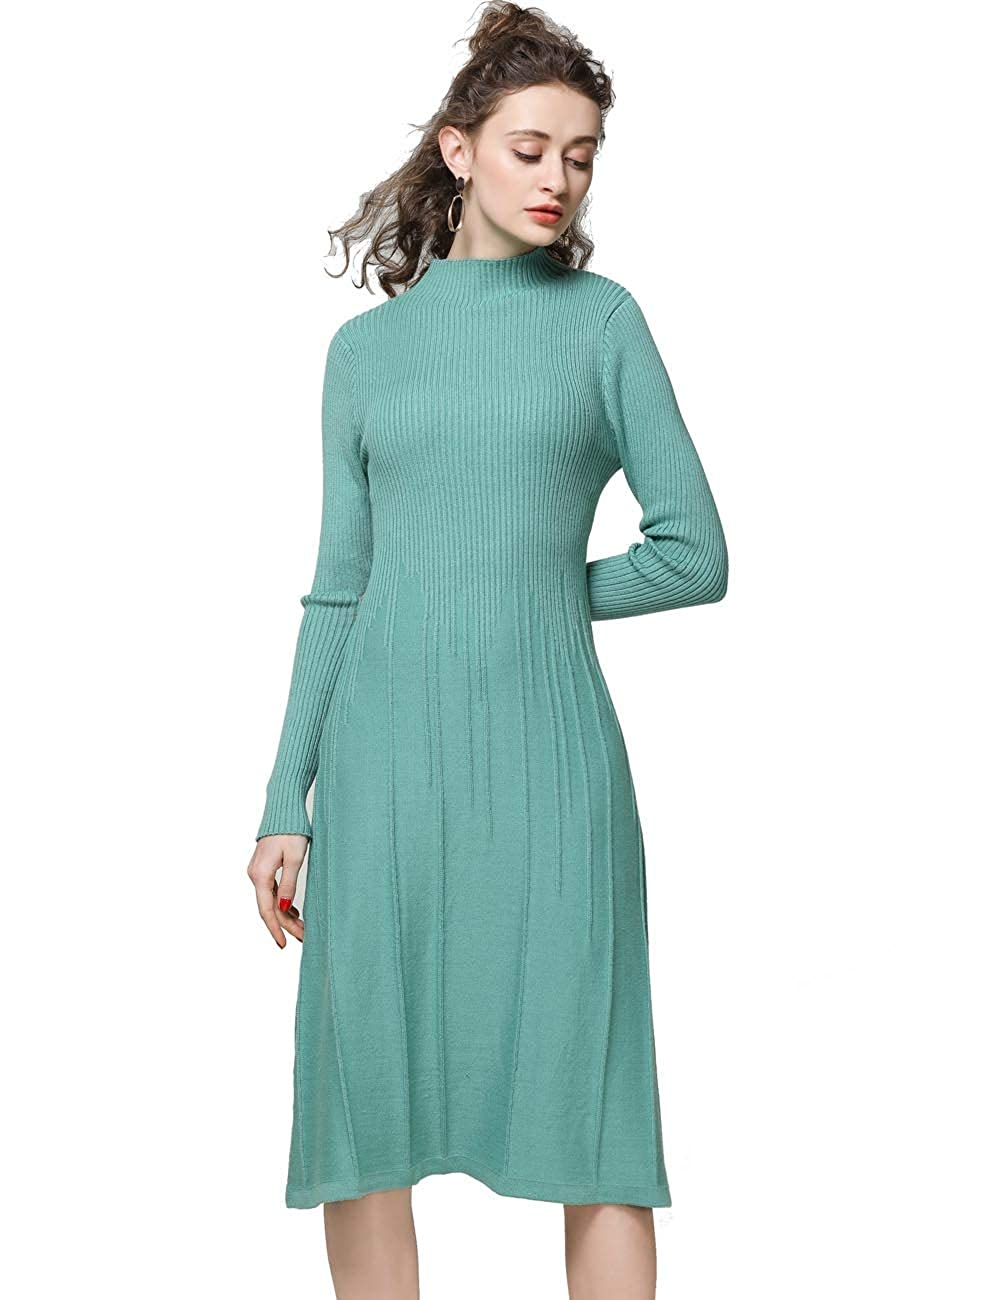 Cmint Green FINCATI Knitted Dress Women Cashmere Wool Soft Warm Cozy Elegant Ribbed Elbow KneeLength Sweater Dresses